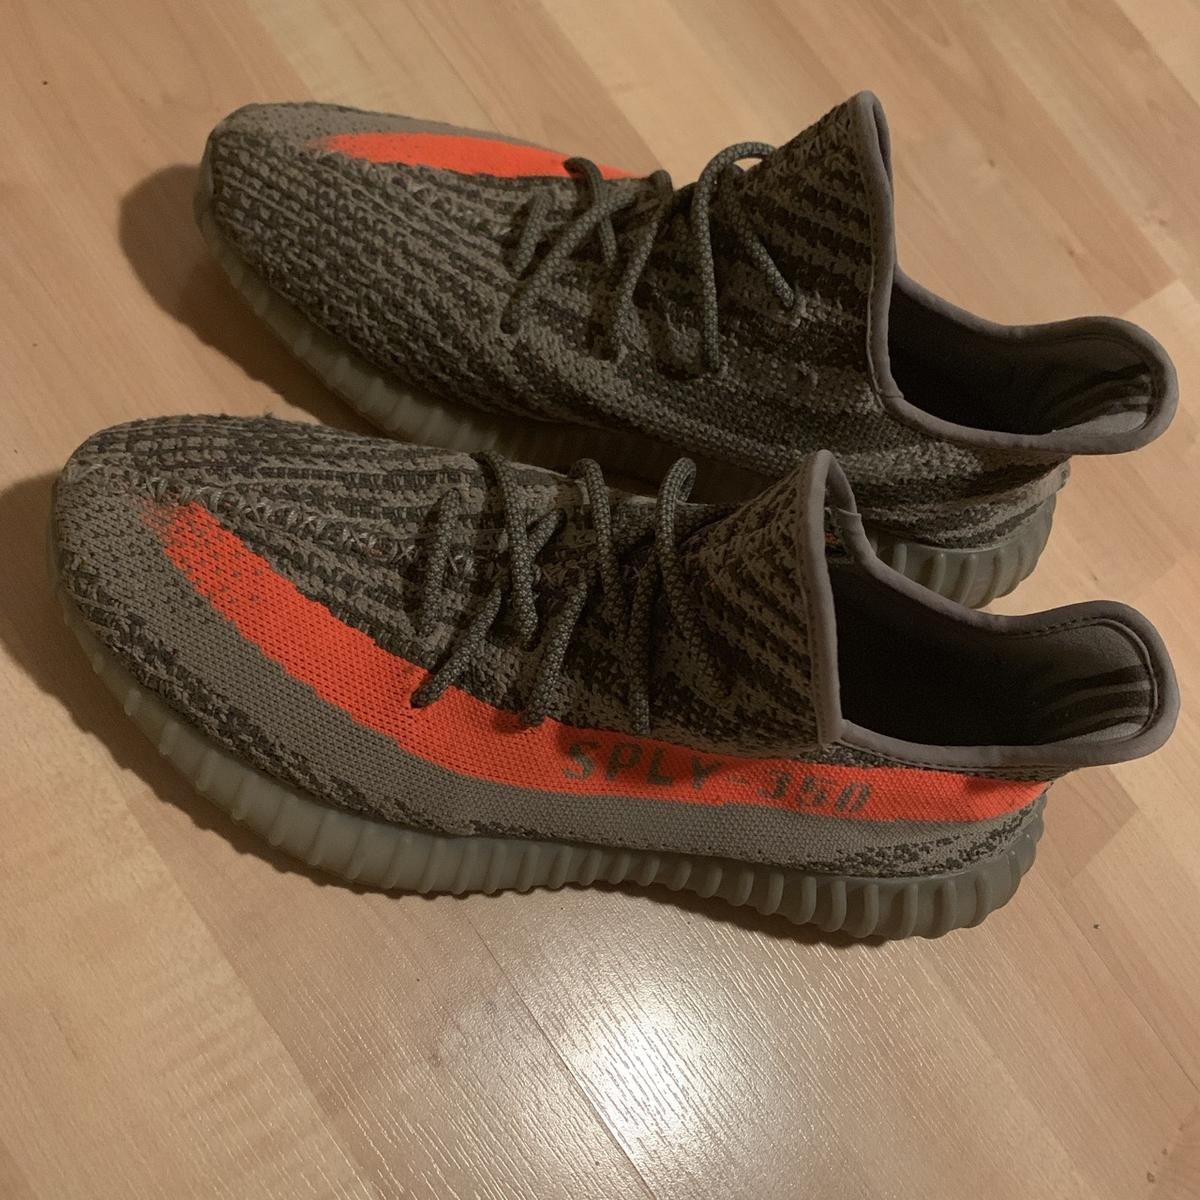 best sneakers 0e9d6 b3f4a Adidas yeezy boost 350 v2 beluga 1.0